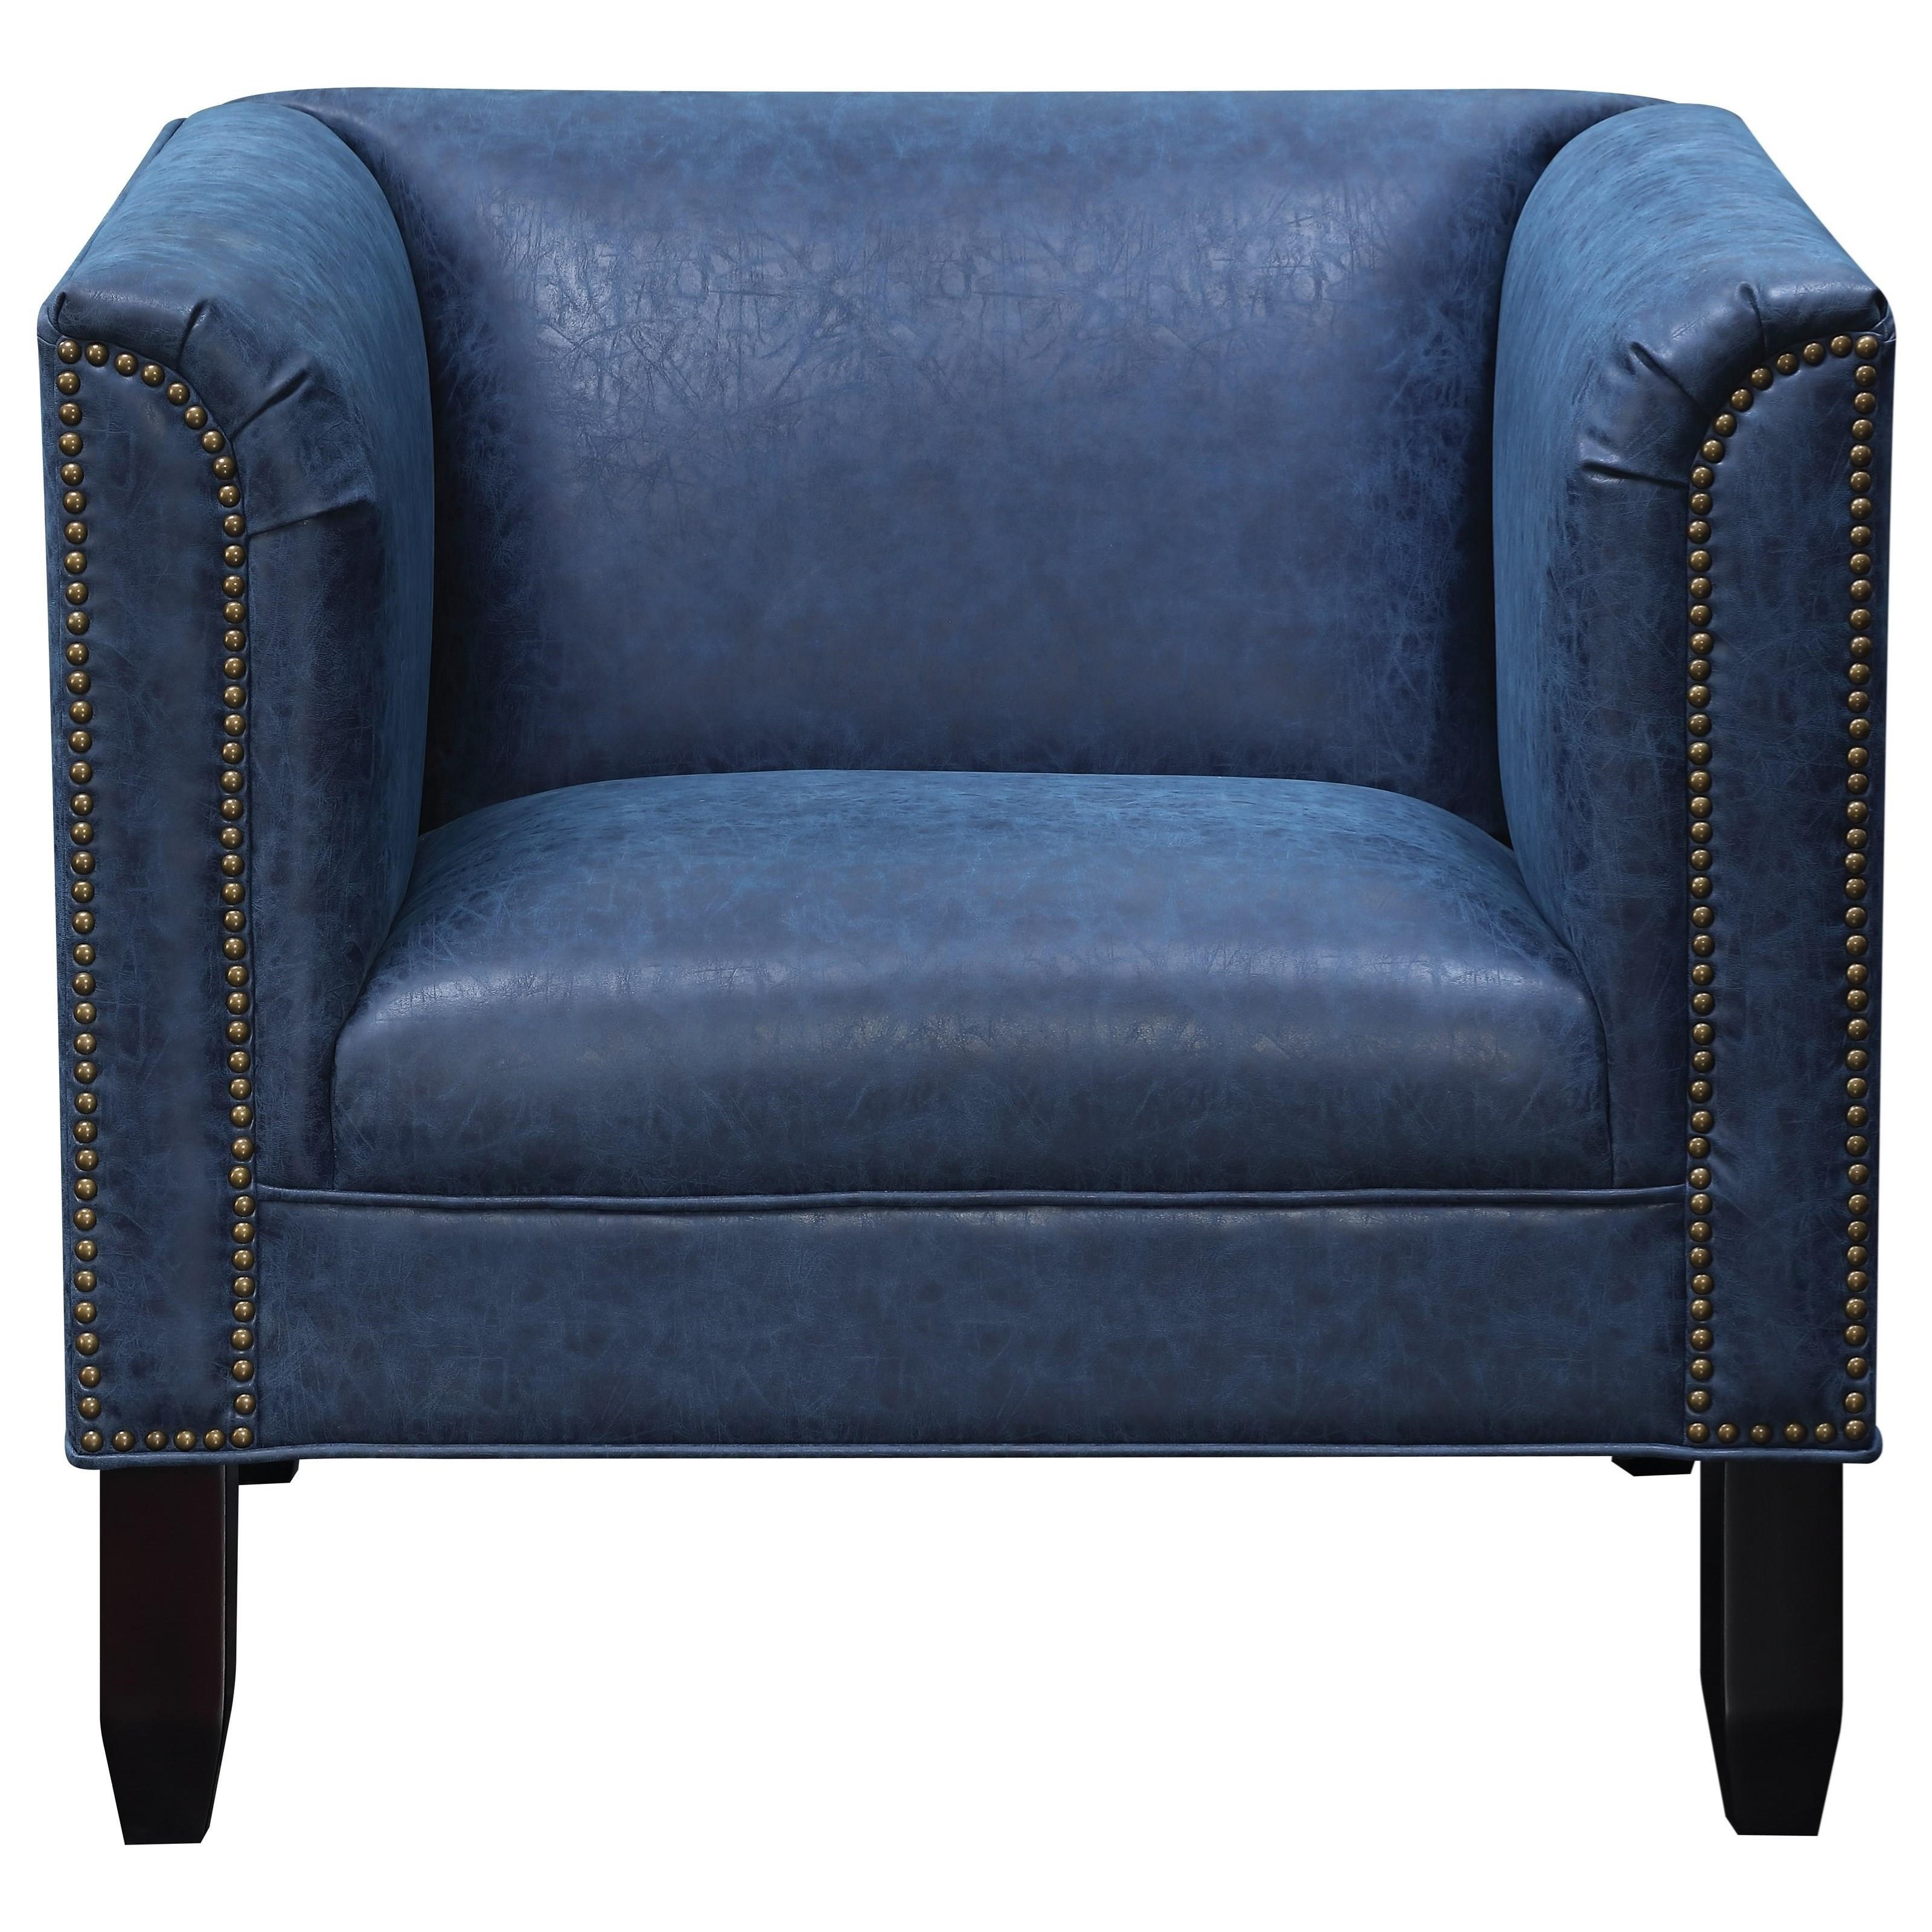 Genial Donny Osmond Home Accent Seating Accent Chair With Nailhead Trim   Coaster  Fine Furniture